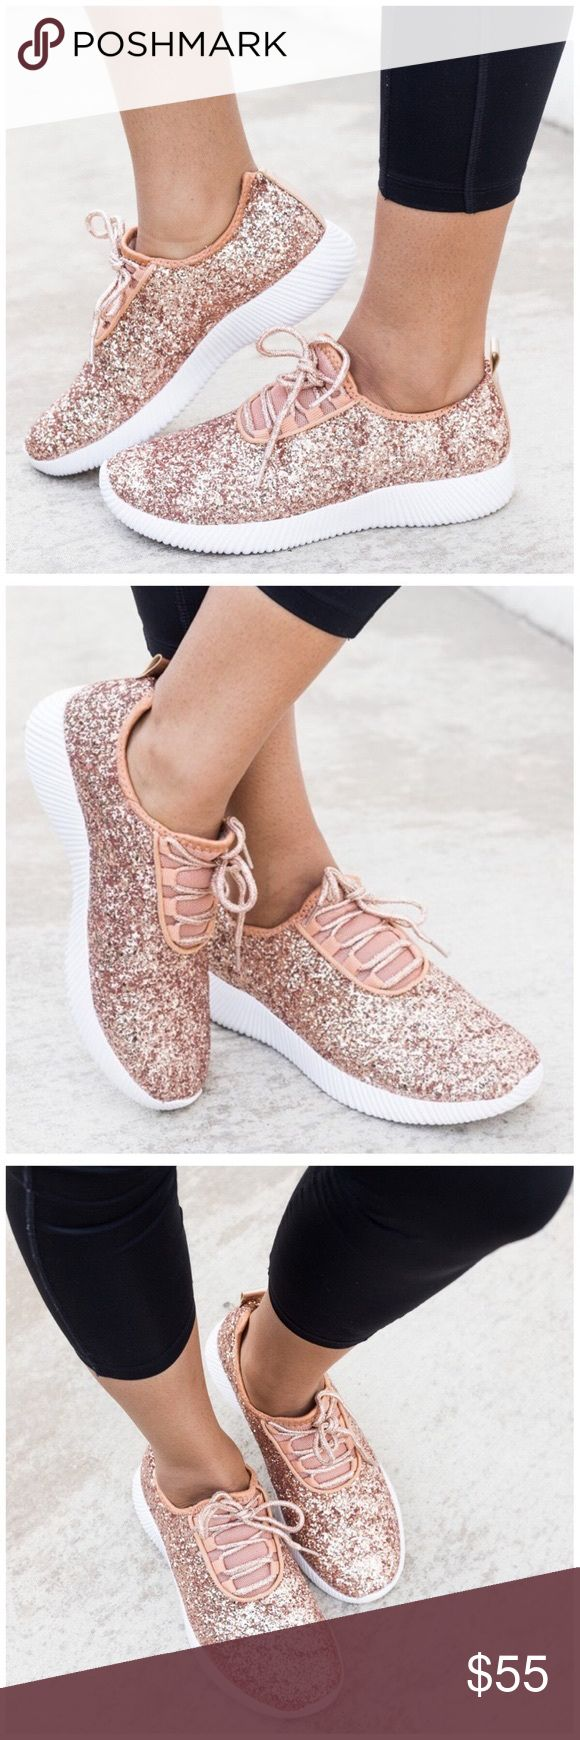 "BEST SELLER* New Rose Gold Glitter Sneakers Glittery sneakers that feature a lace up front, rigged sole, and a cushioned, arched heel. Sole height measures approximately 1.25"". These fit true to size. If you are a half size order a size up.   ✨ Use the ""buy now"" or ""add to bundle"" feature to purchase ✨  PRICE FIRM Shoes Sneakers"